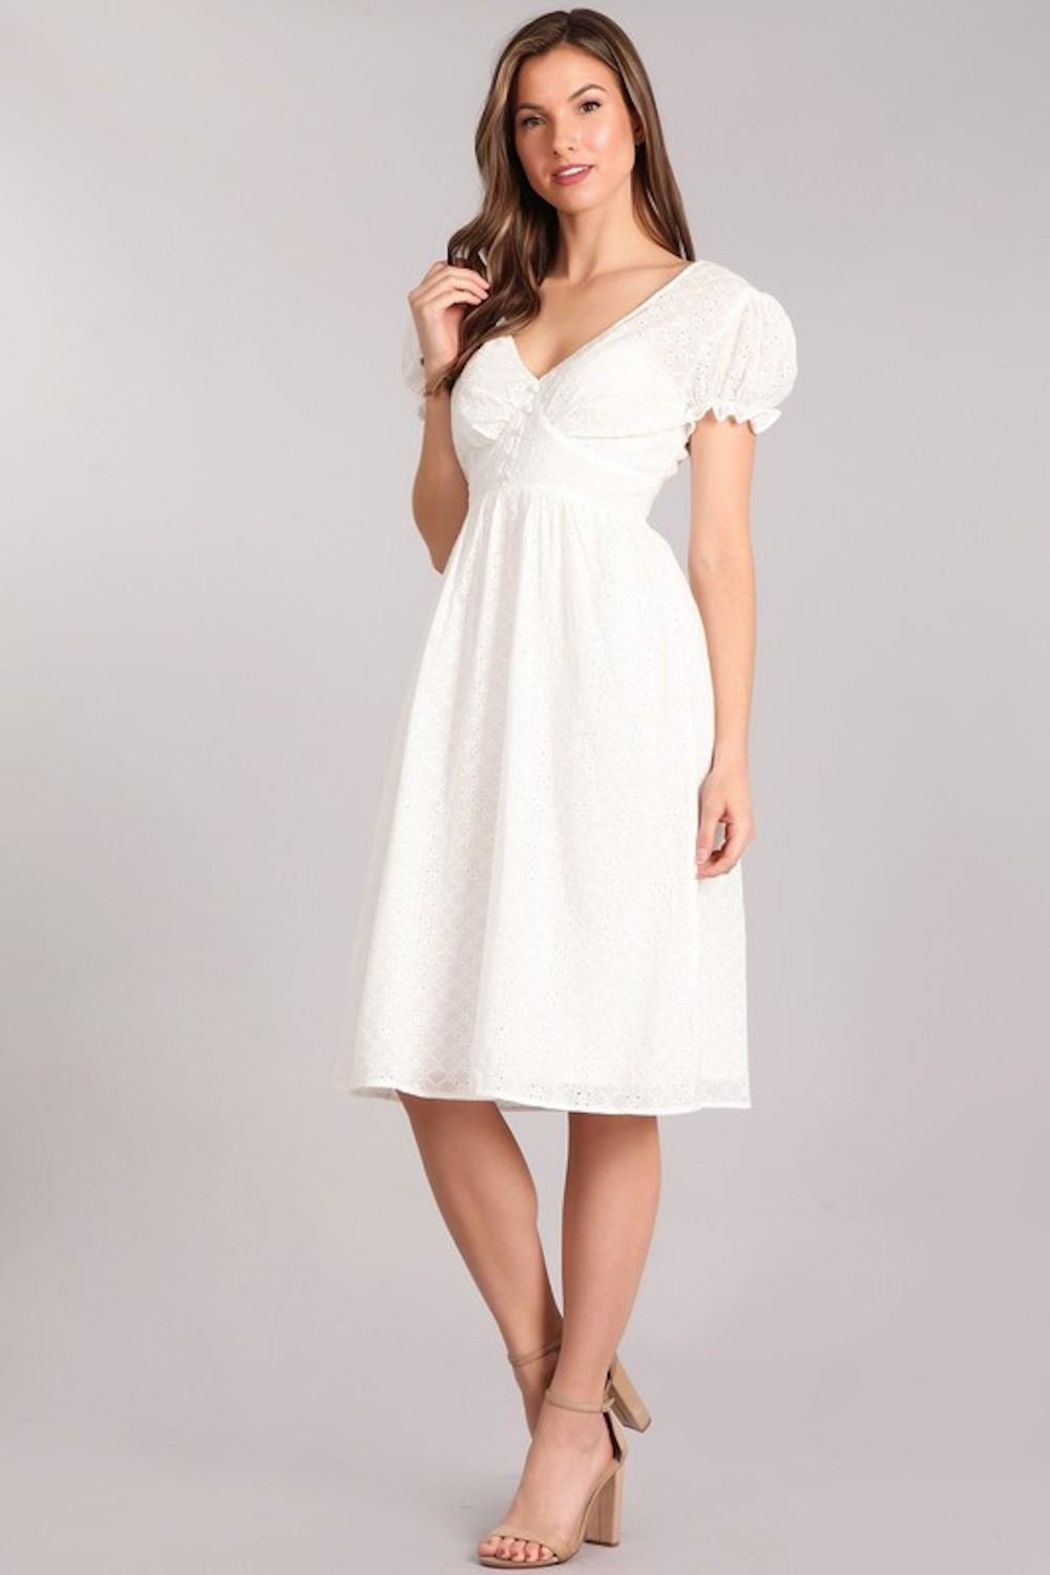 bfbb25eeb59 Verty Eyelet White Midi from Los Angeles by AndyLiz Boutique ...